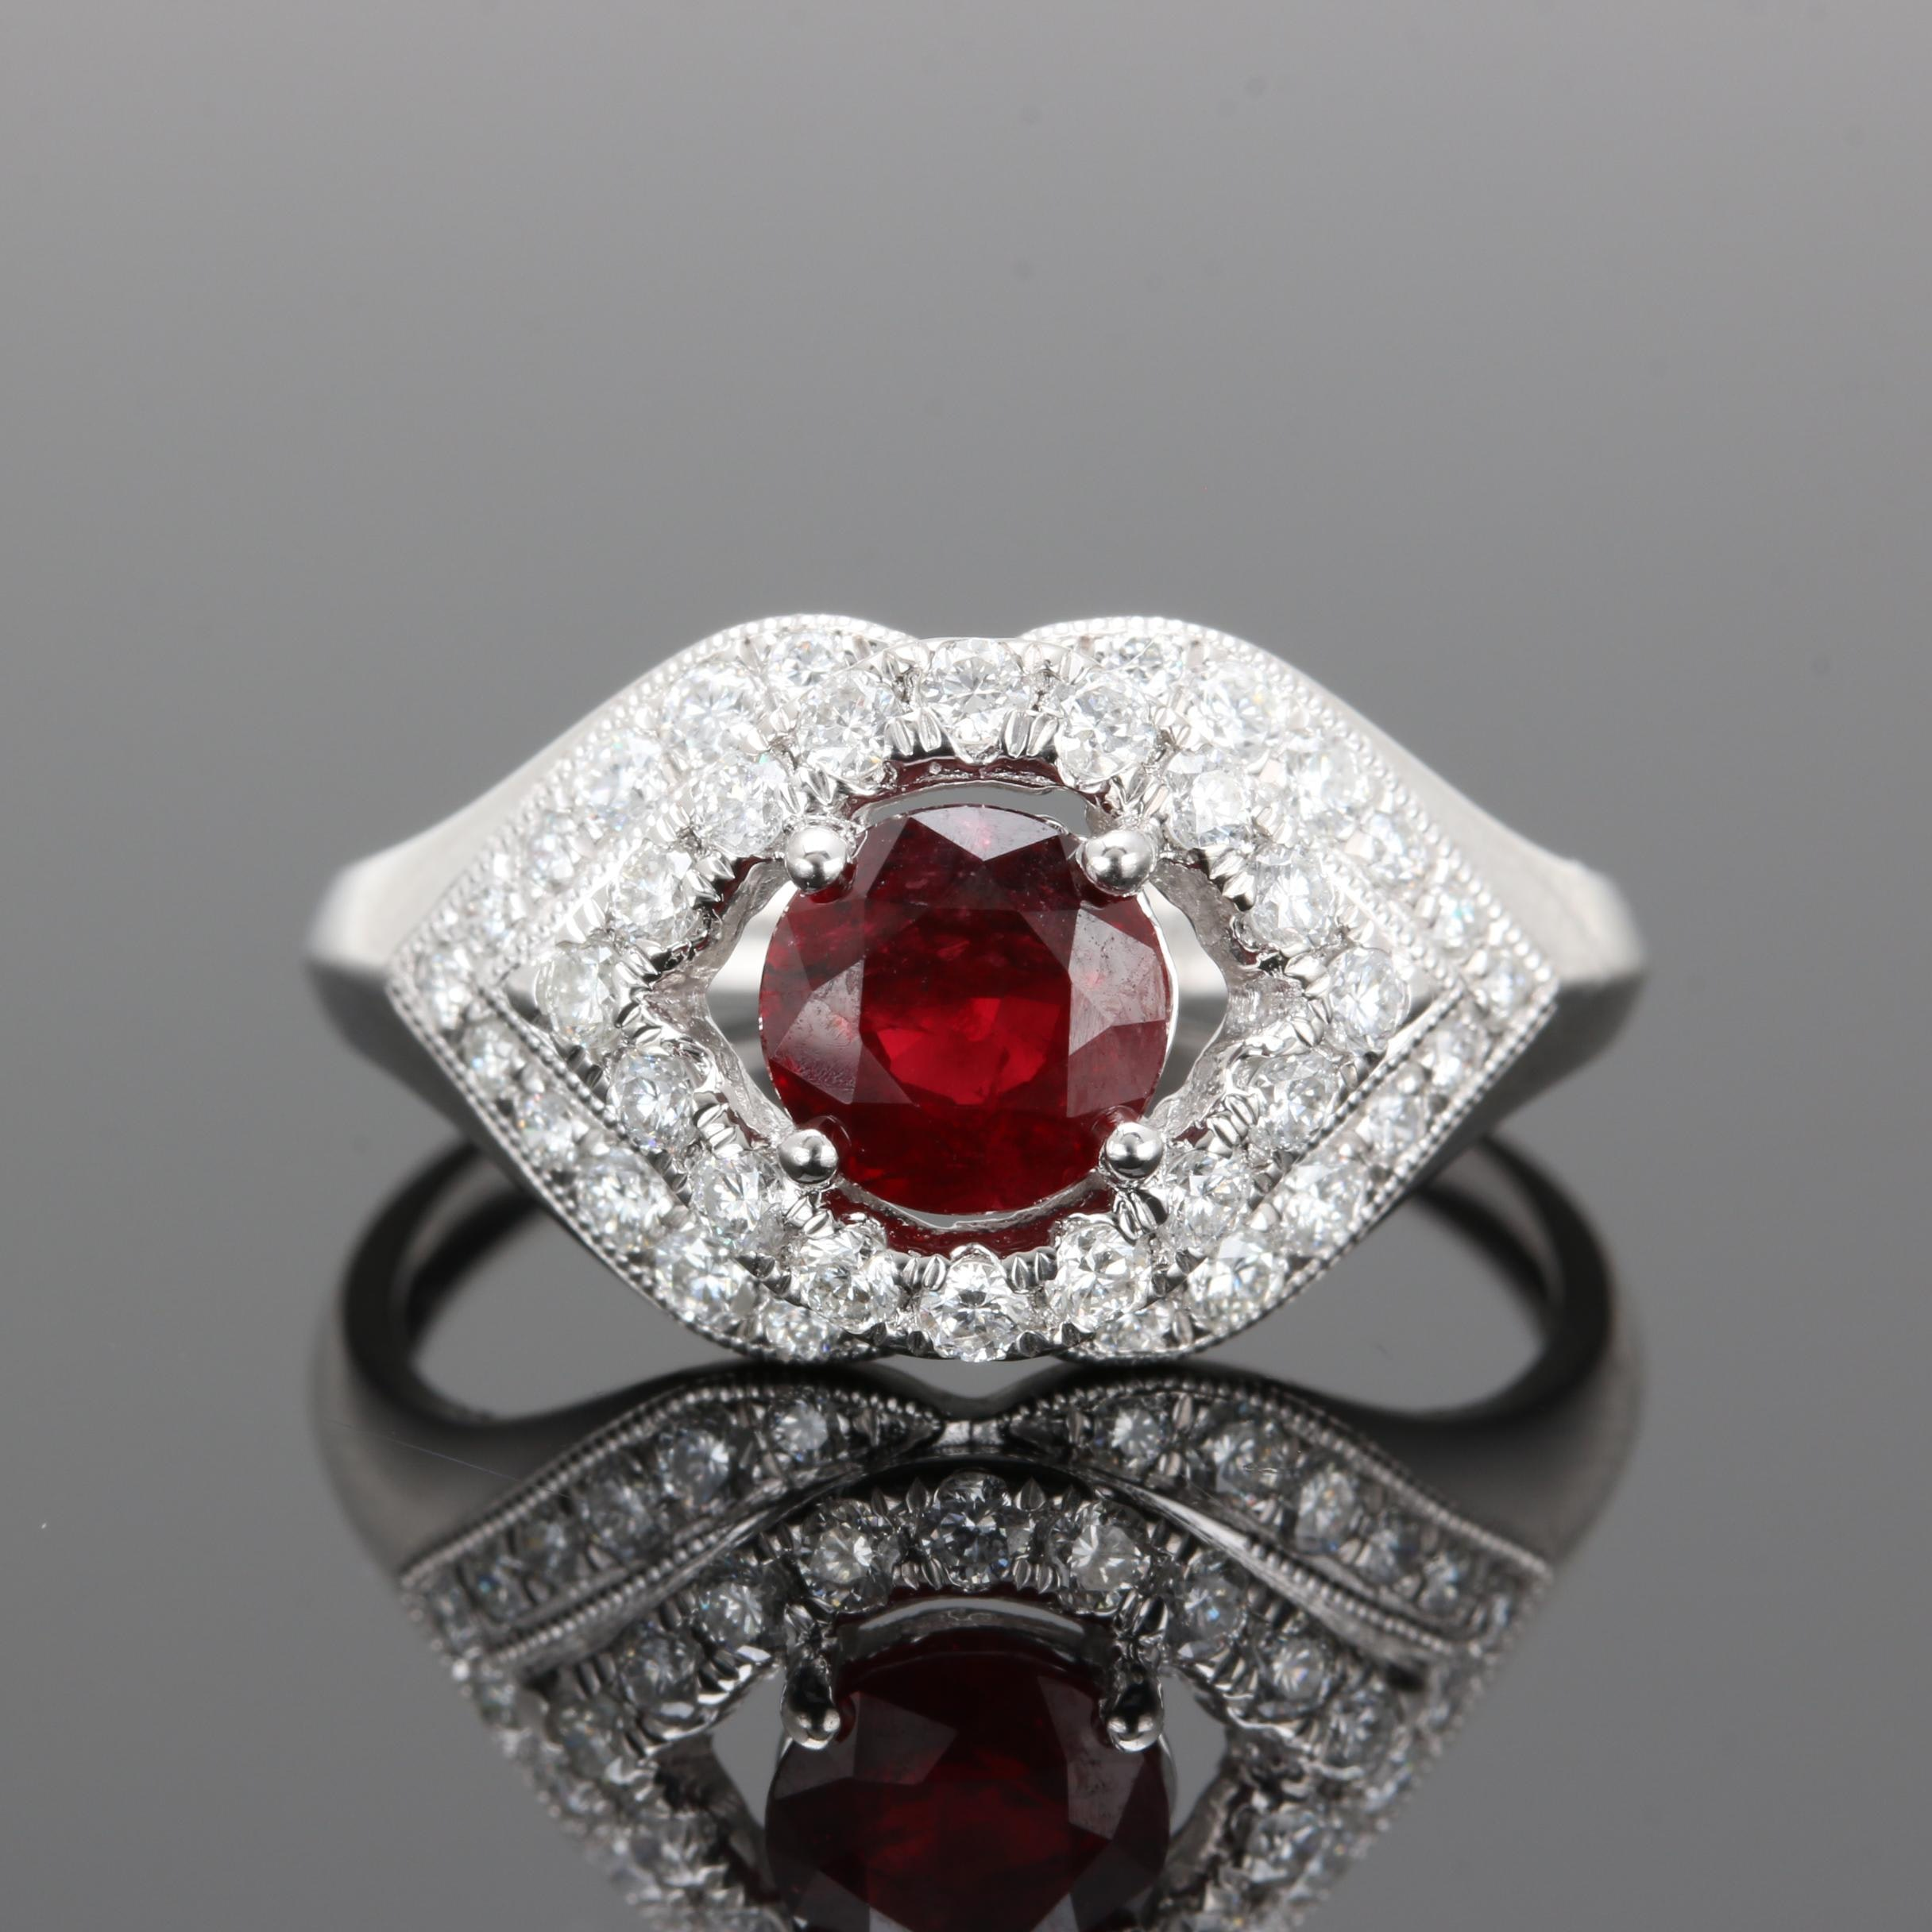 Platinum 1.09 CT Ruby and Diamond Ring Including GIA Report